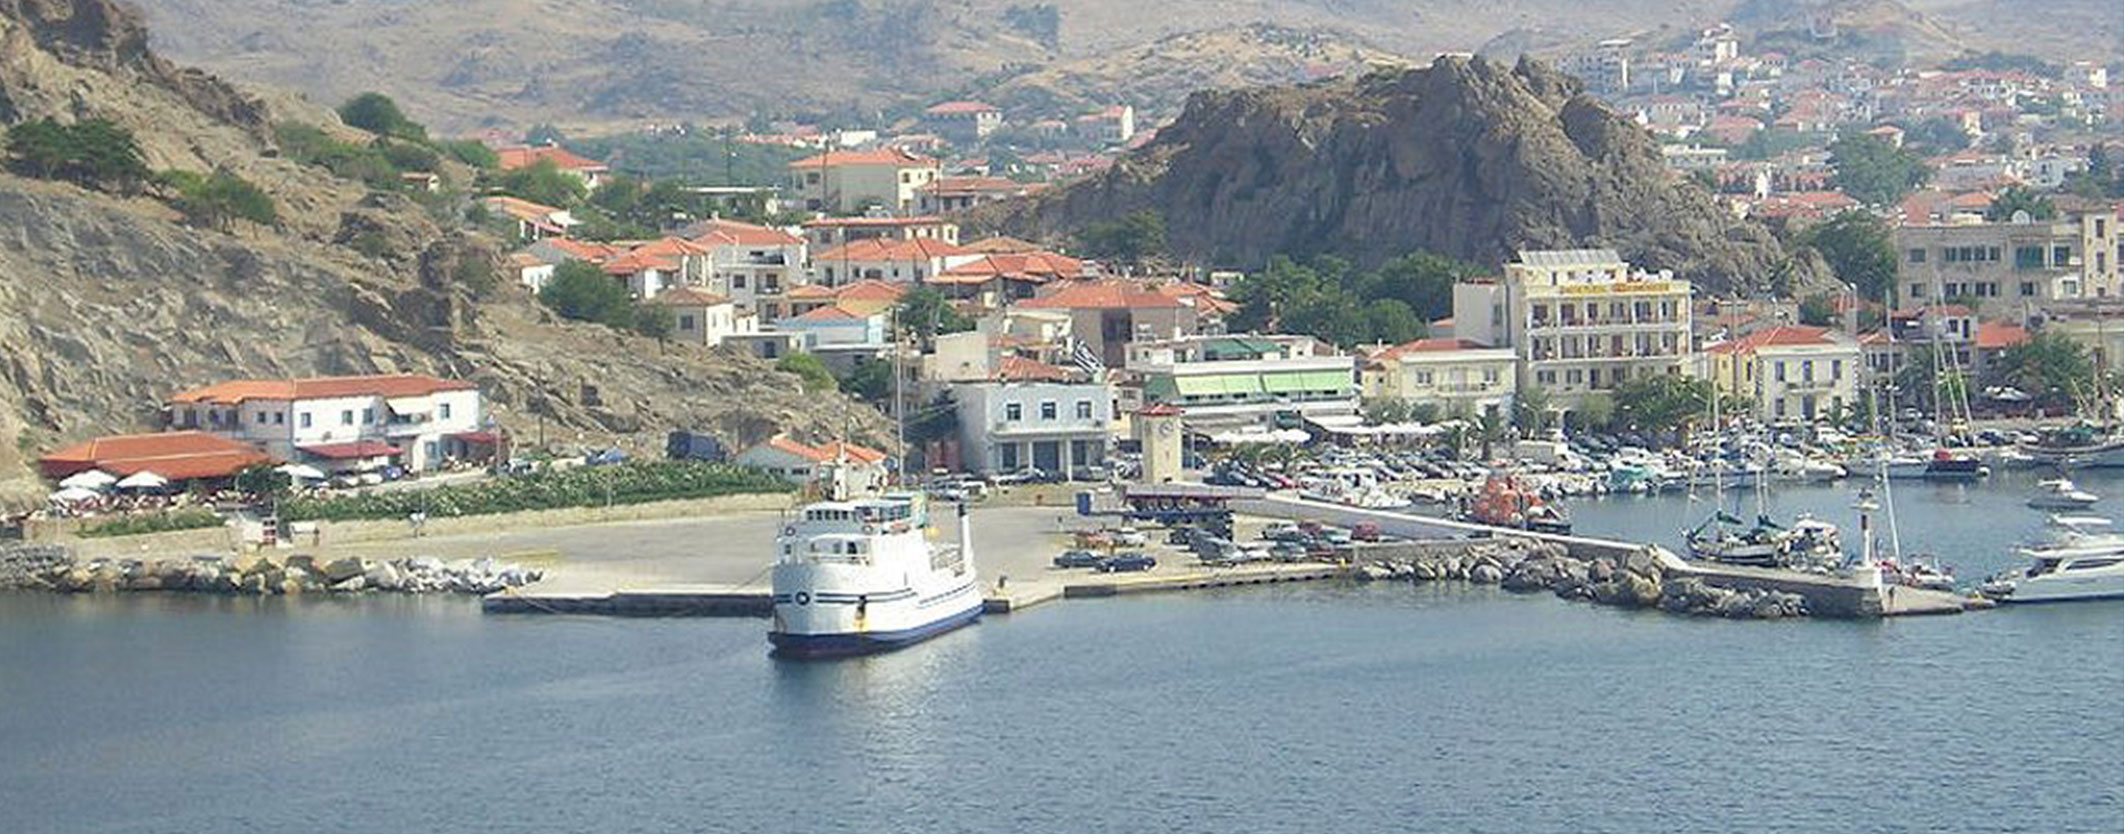 Port of Lemnos